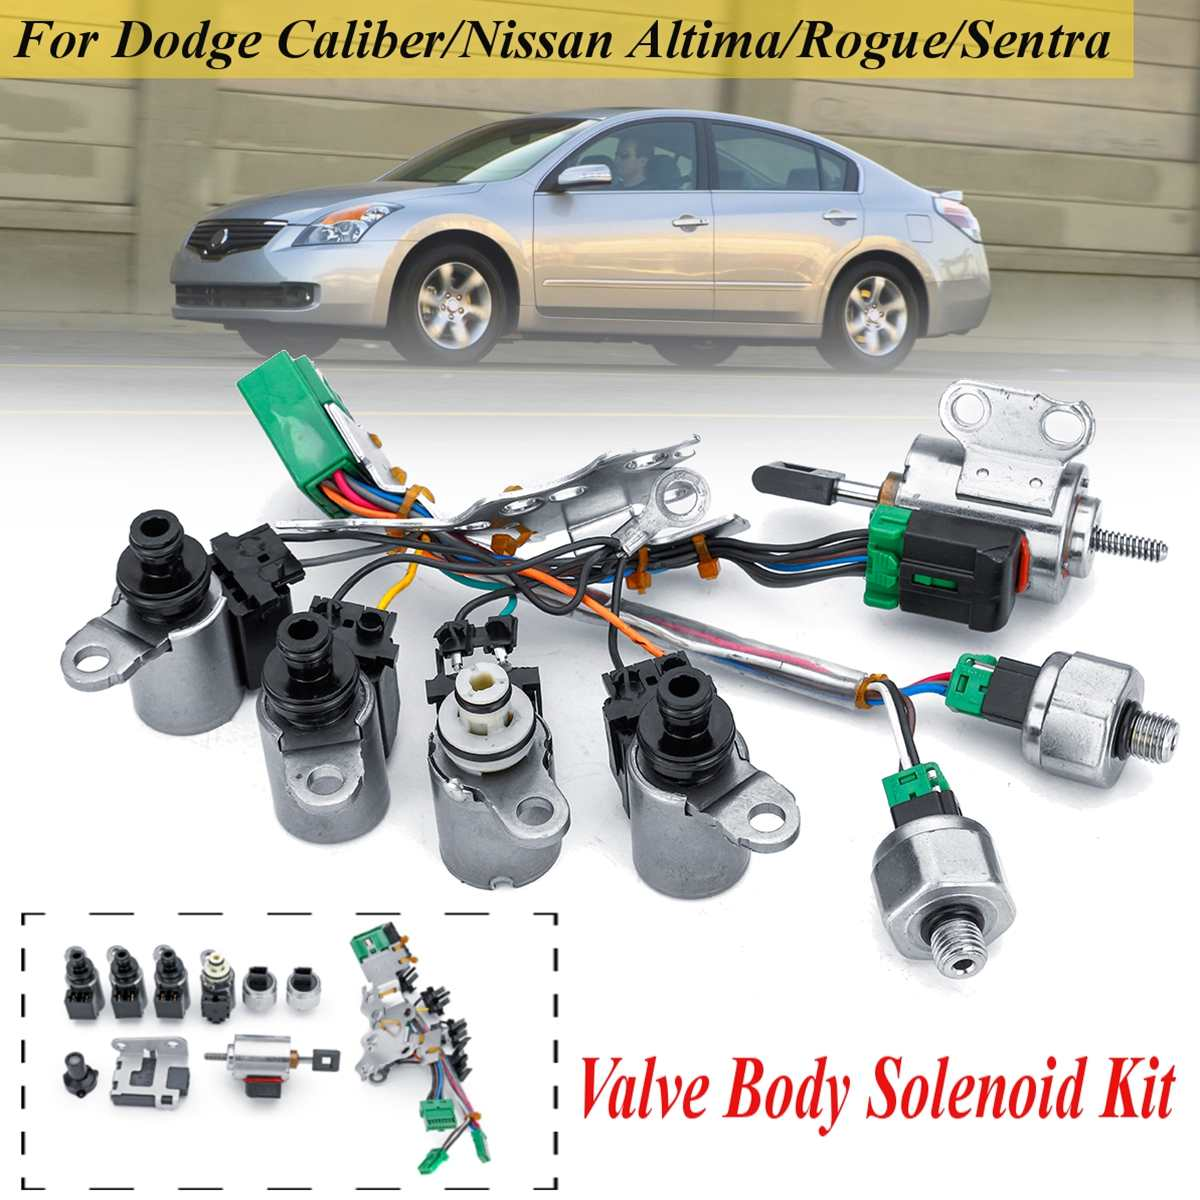 Valve Body Solenoids Kit For Nissan Altima Sentra Rogue CVT JF011E RE0F10A F1CJA 33446-JF011 33420XX1